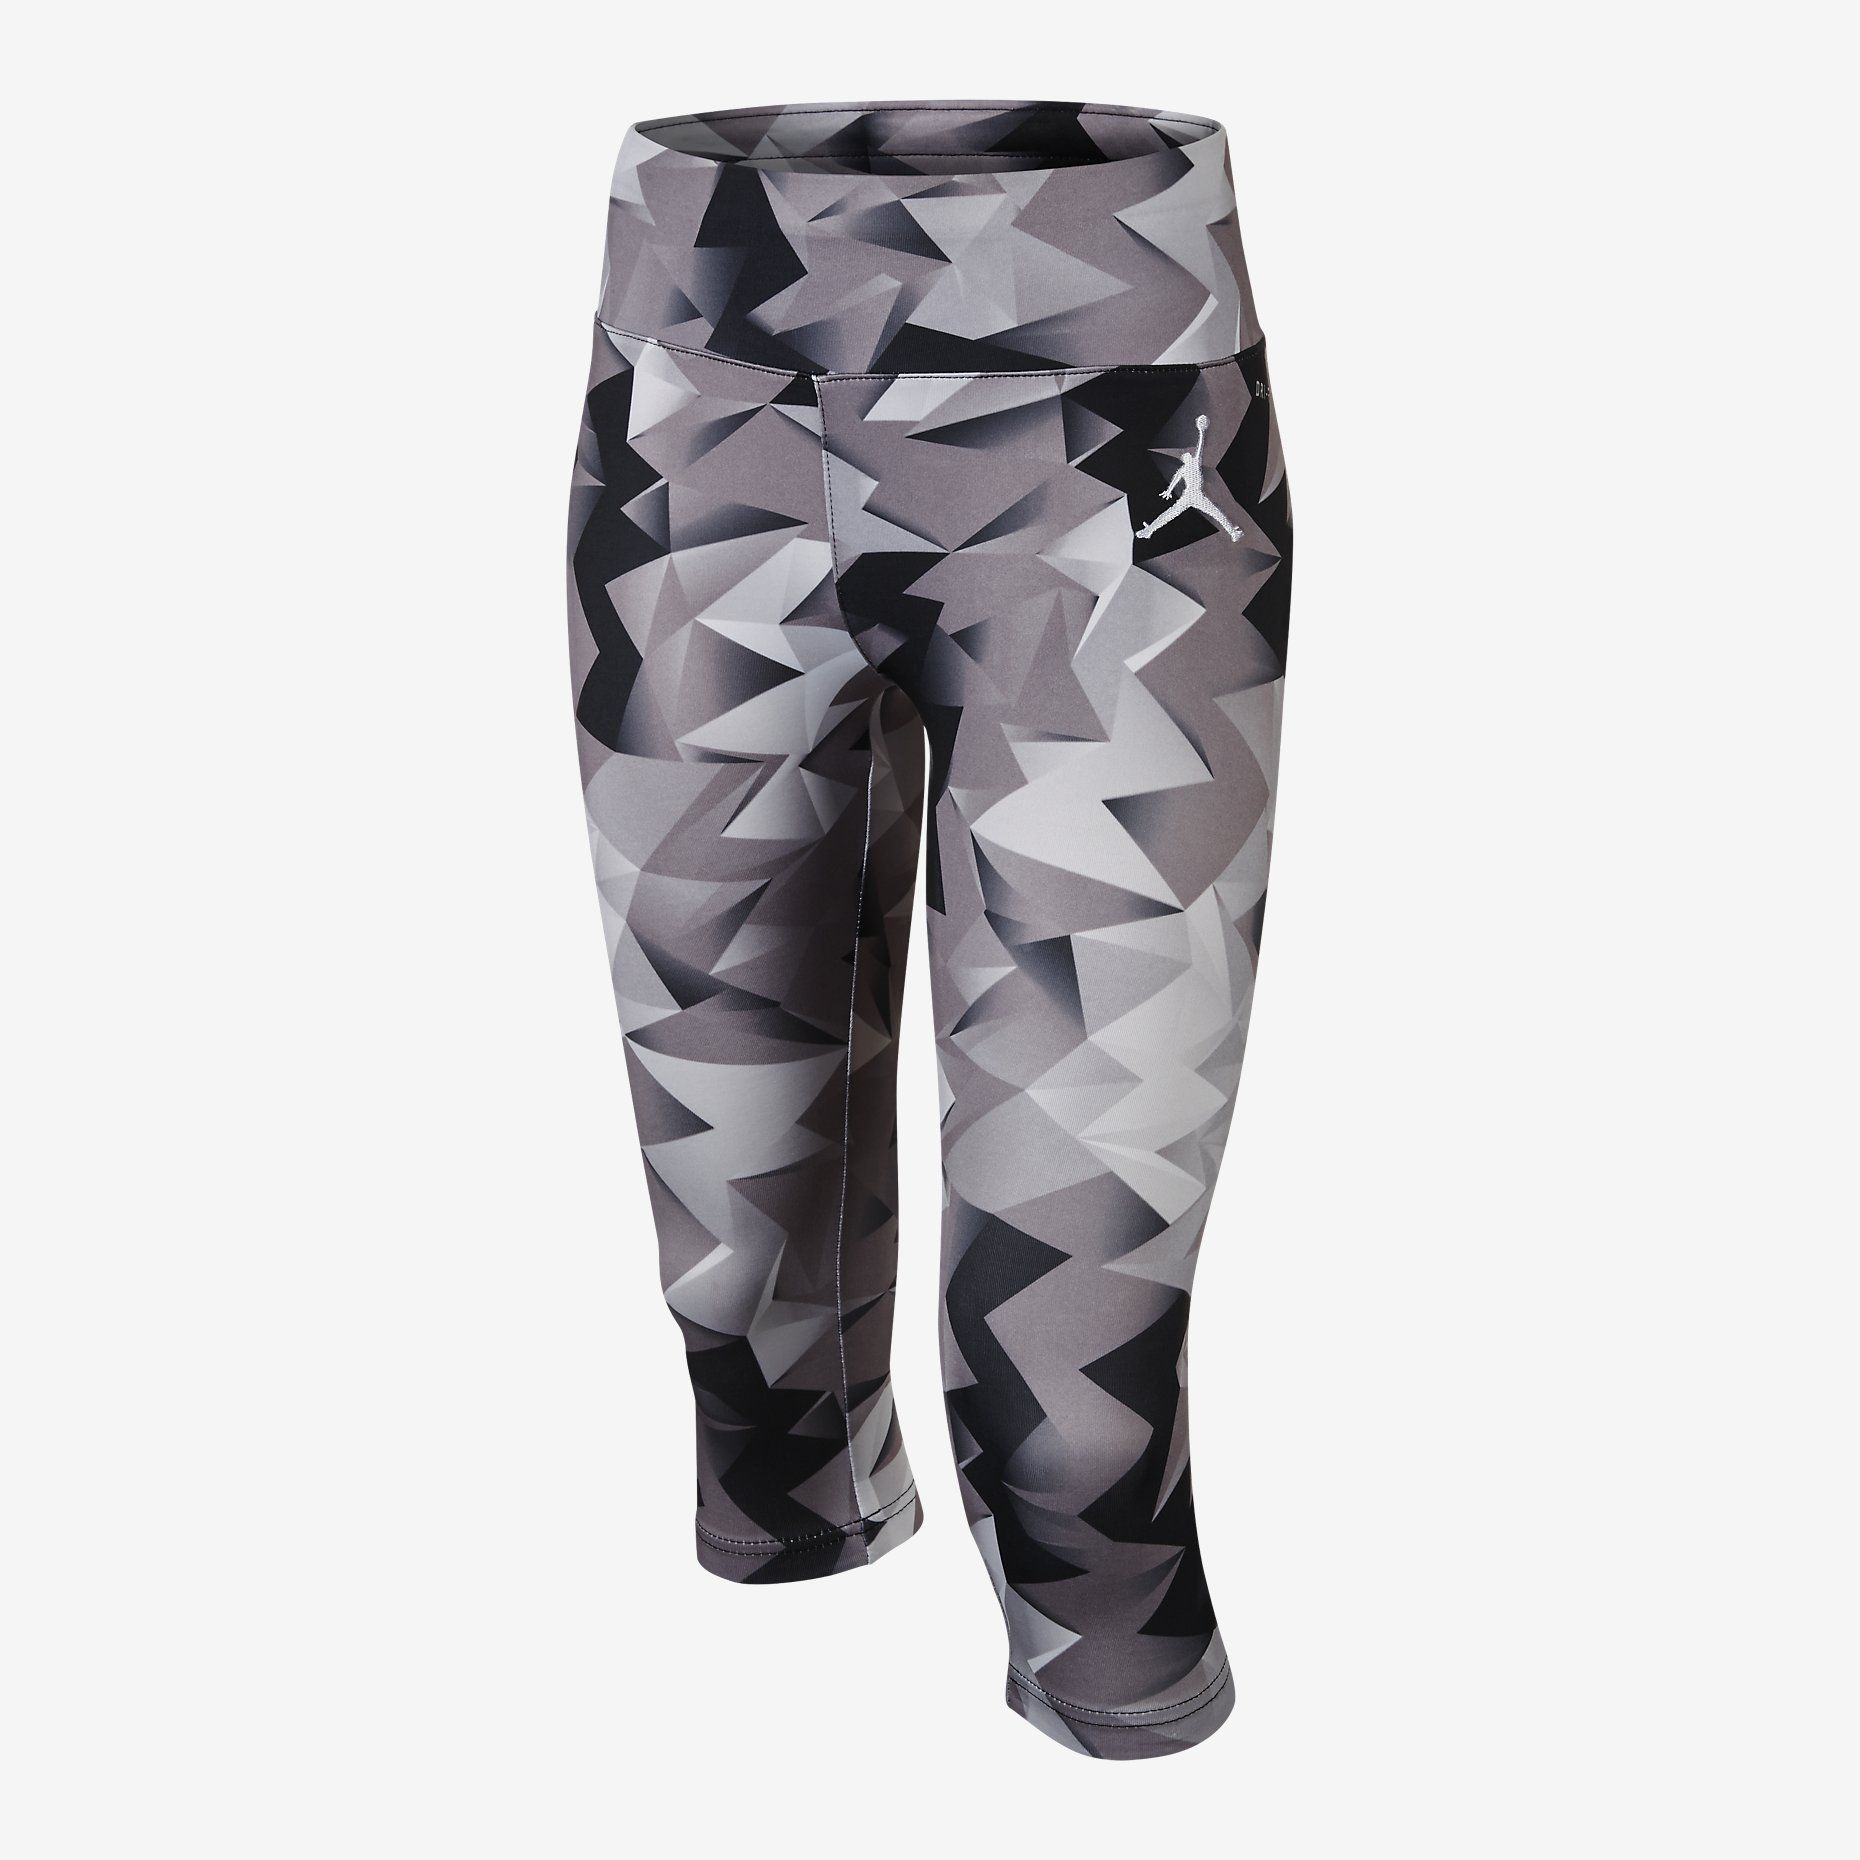 Nike Jordan Sublimation Printed Leggings Girls Black